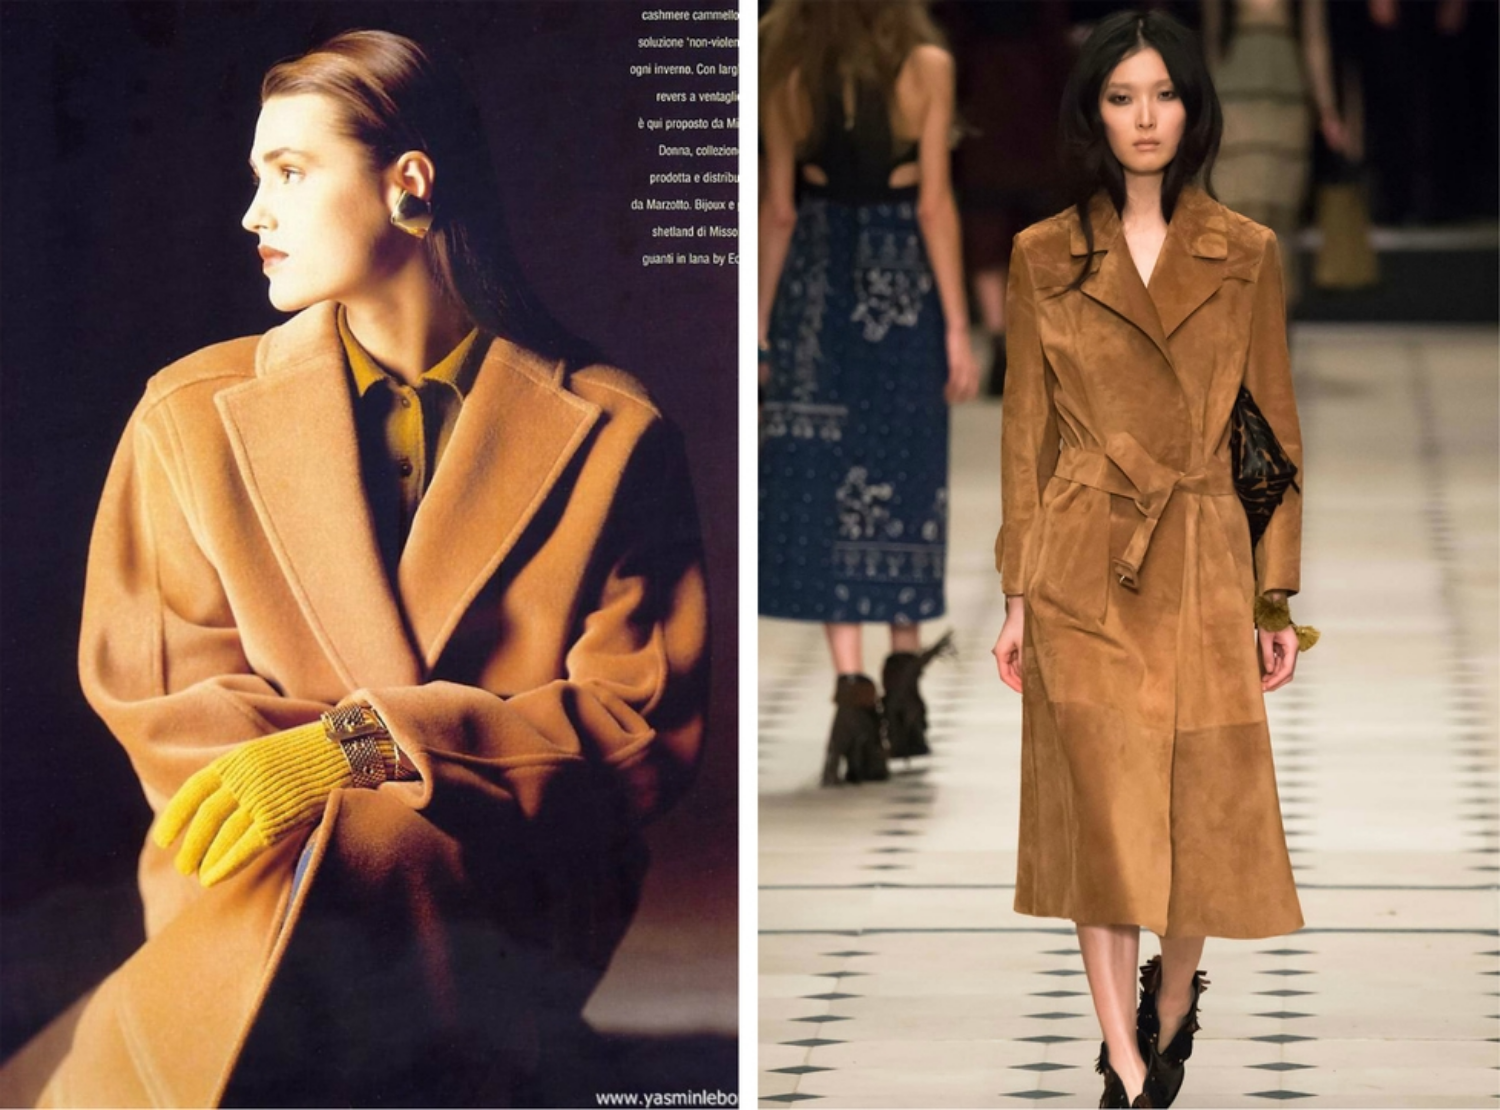 From left to right: Camel coat featured in the 1982Donna Missoni collection,and Burberry Prorsum's  collection for London Fashion Week, Fall 2015.